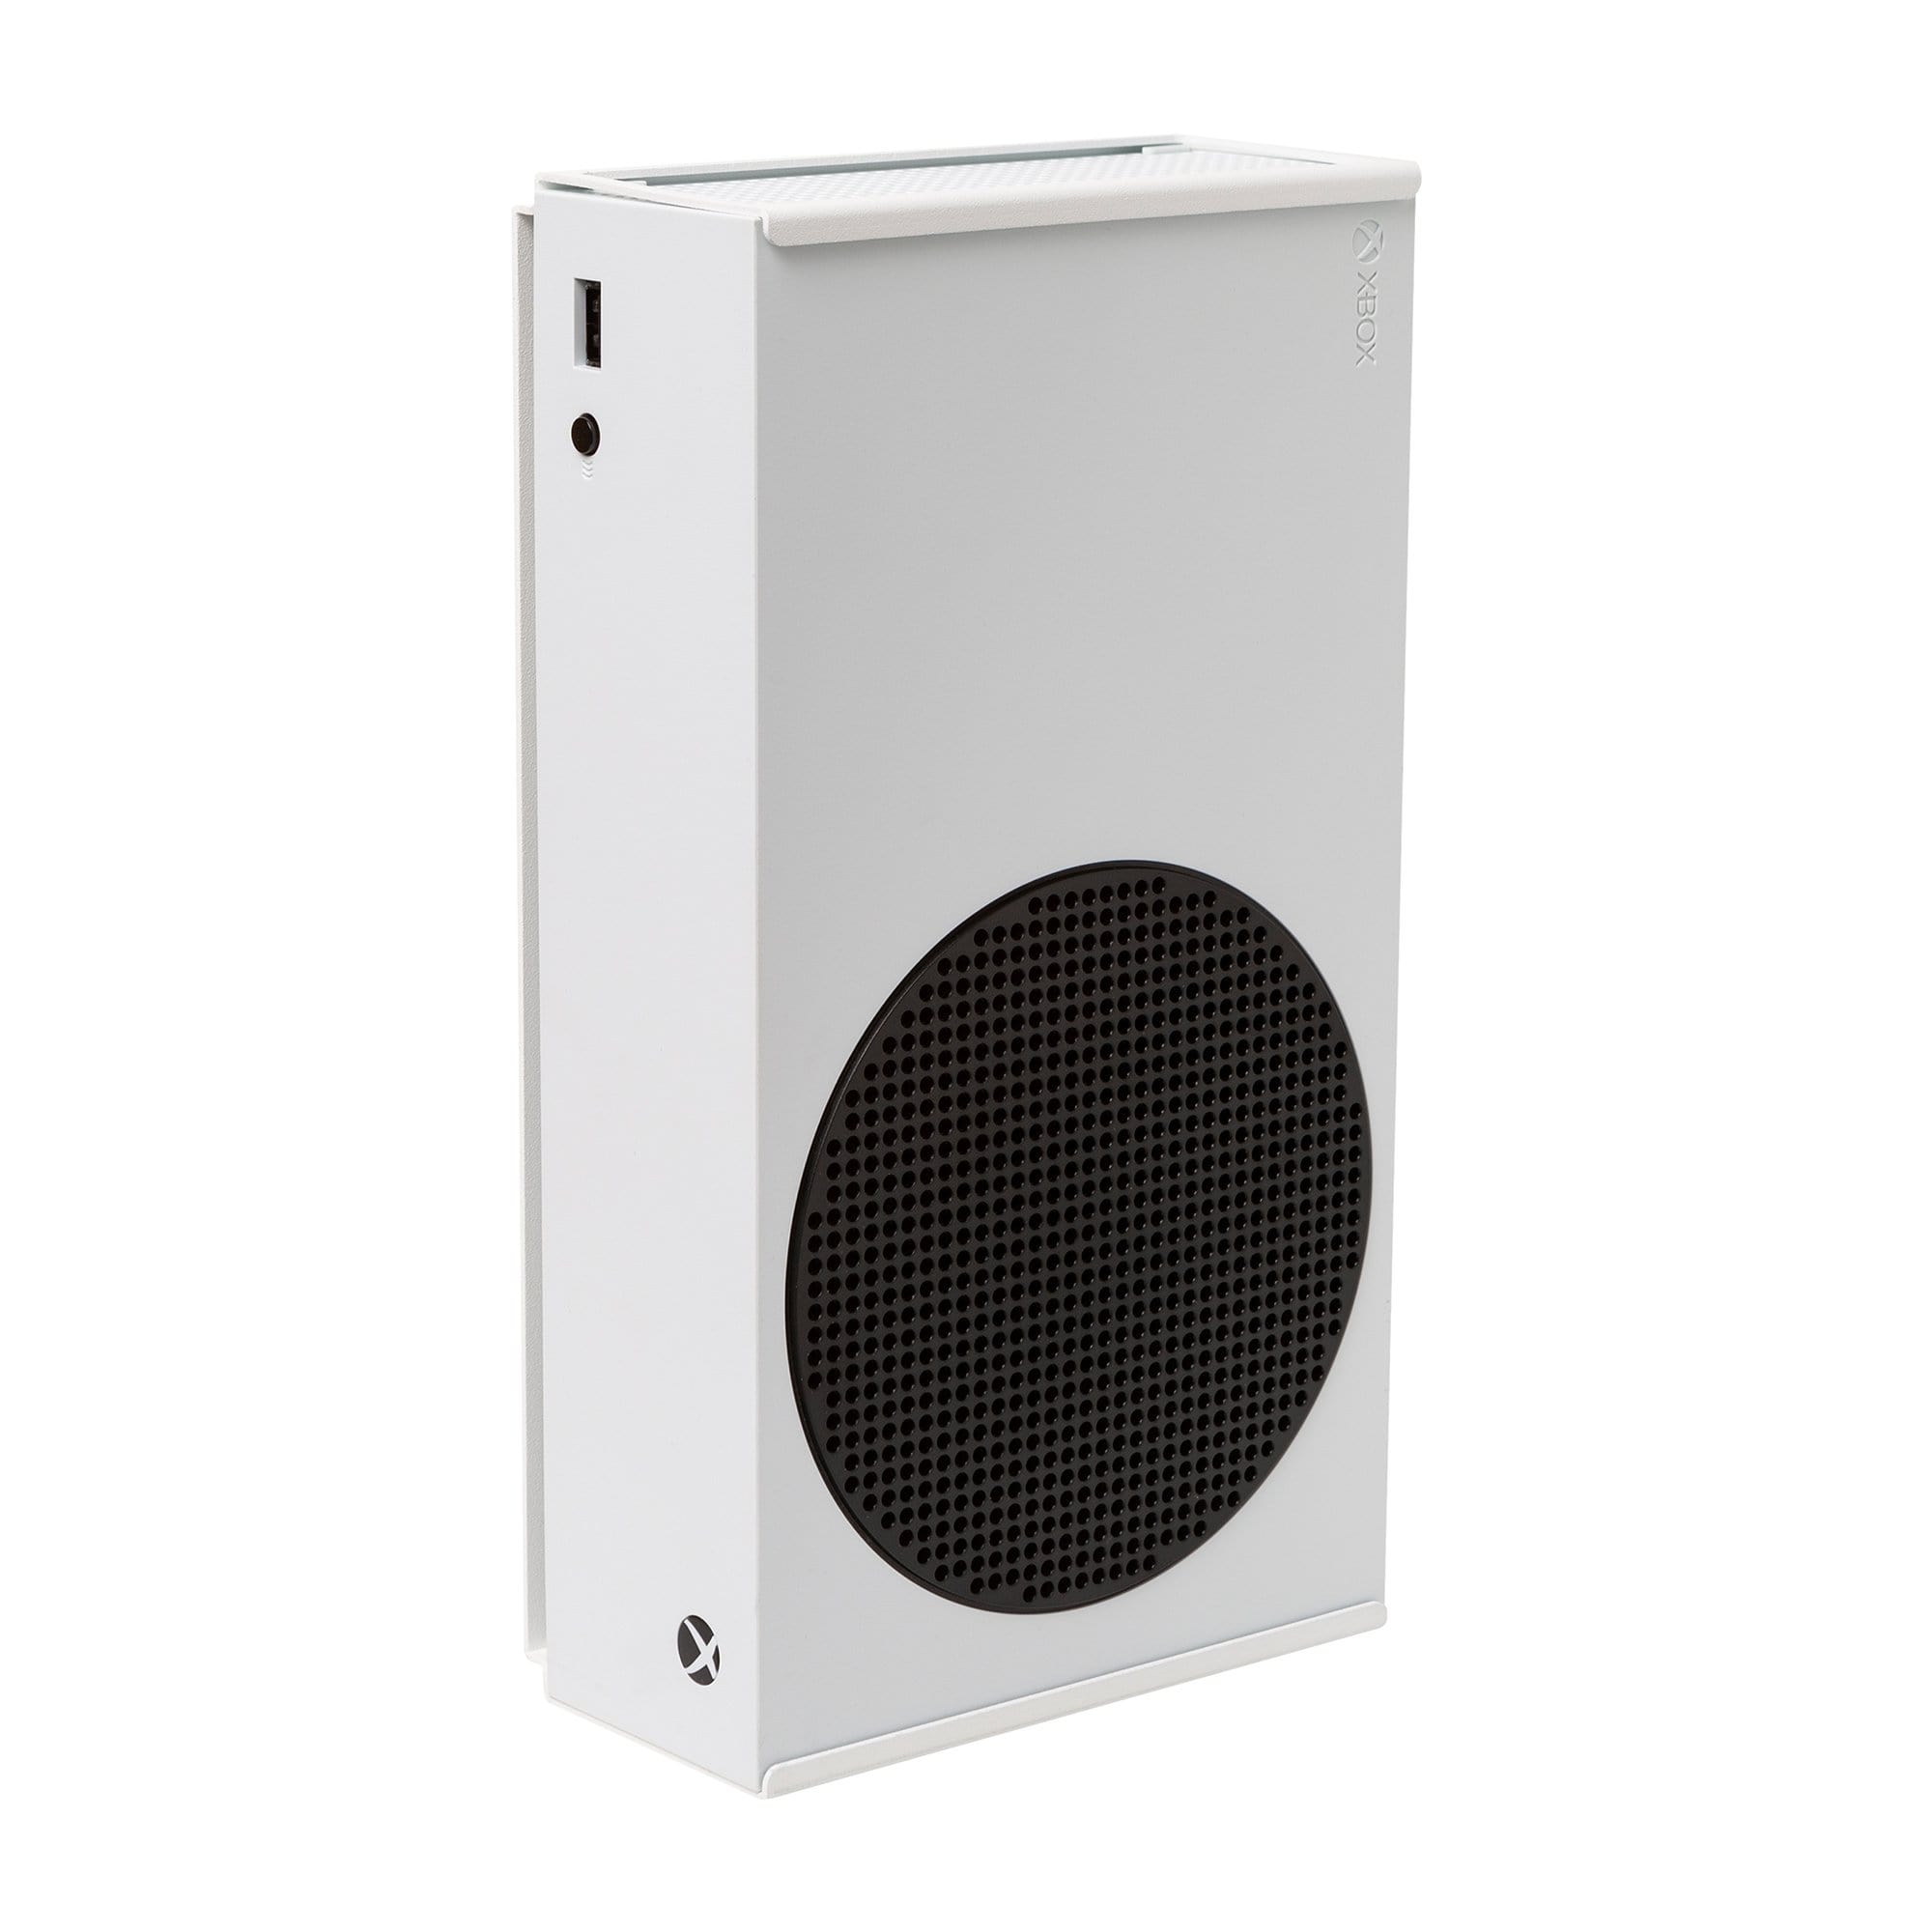 Microsoft Xbox Series S securely held in the HIDEit Xbox Series S Mount in white.